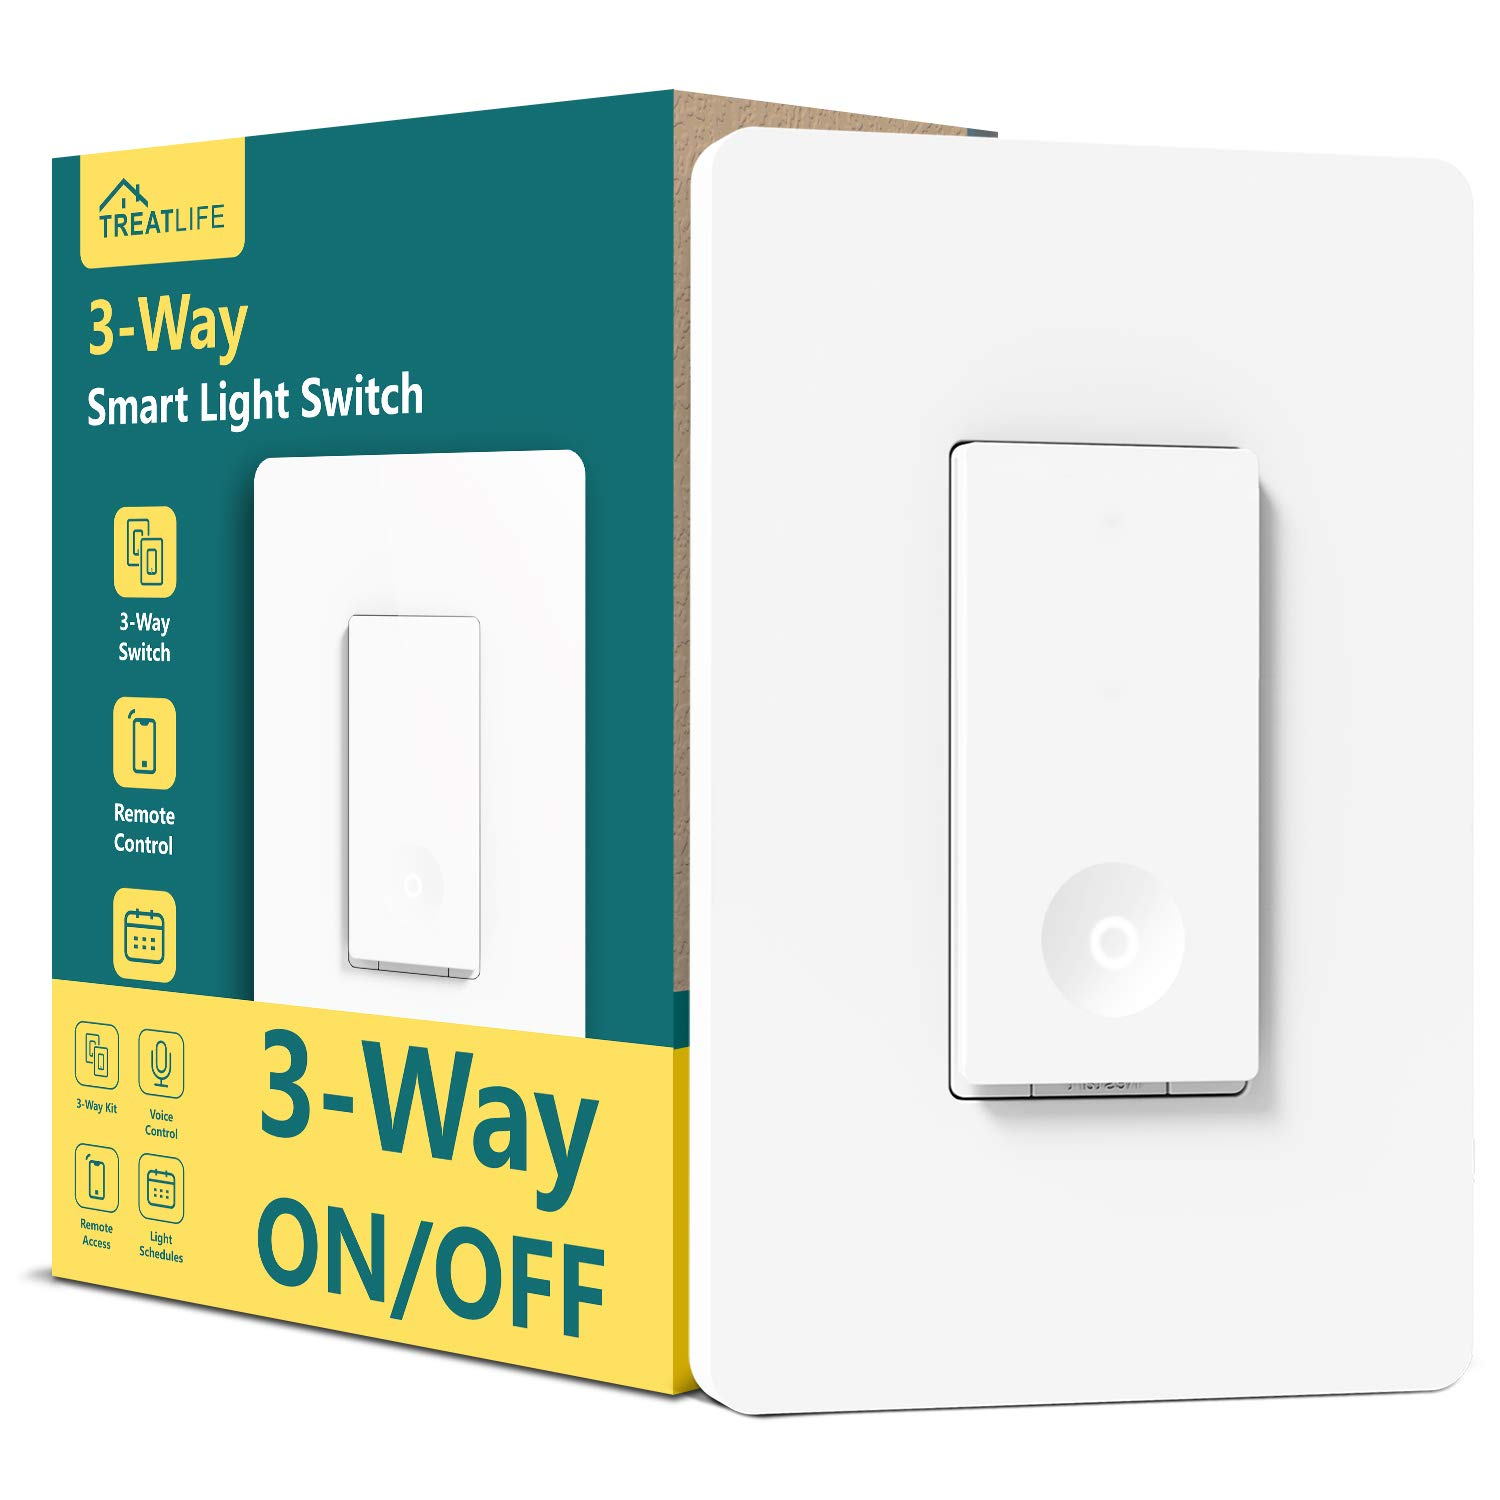 3 Way Smart Switch, Treatlife 2.4GHz WiFi Light Switch Works with Alexa and  Google Home, Neutral Wire Required, Remote Control, Schedule Timer, ETL  Certified, 1 Pack, White: Amazon.com: Industrial & ScientificAmazon.com